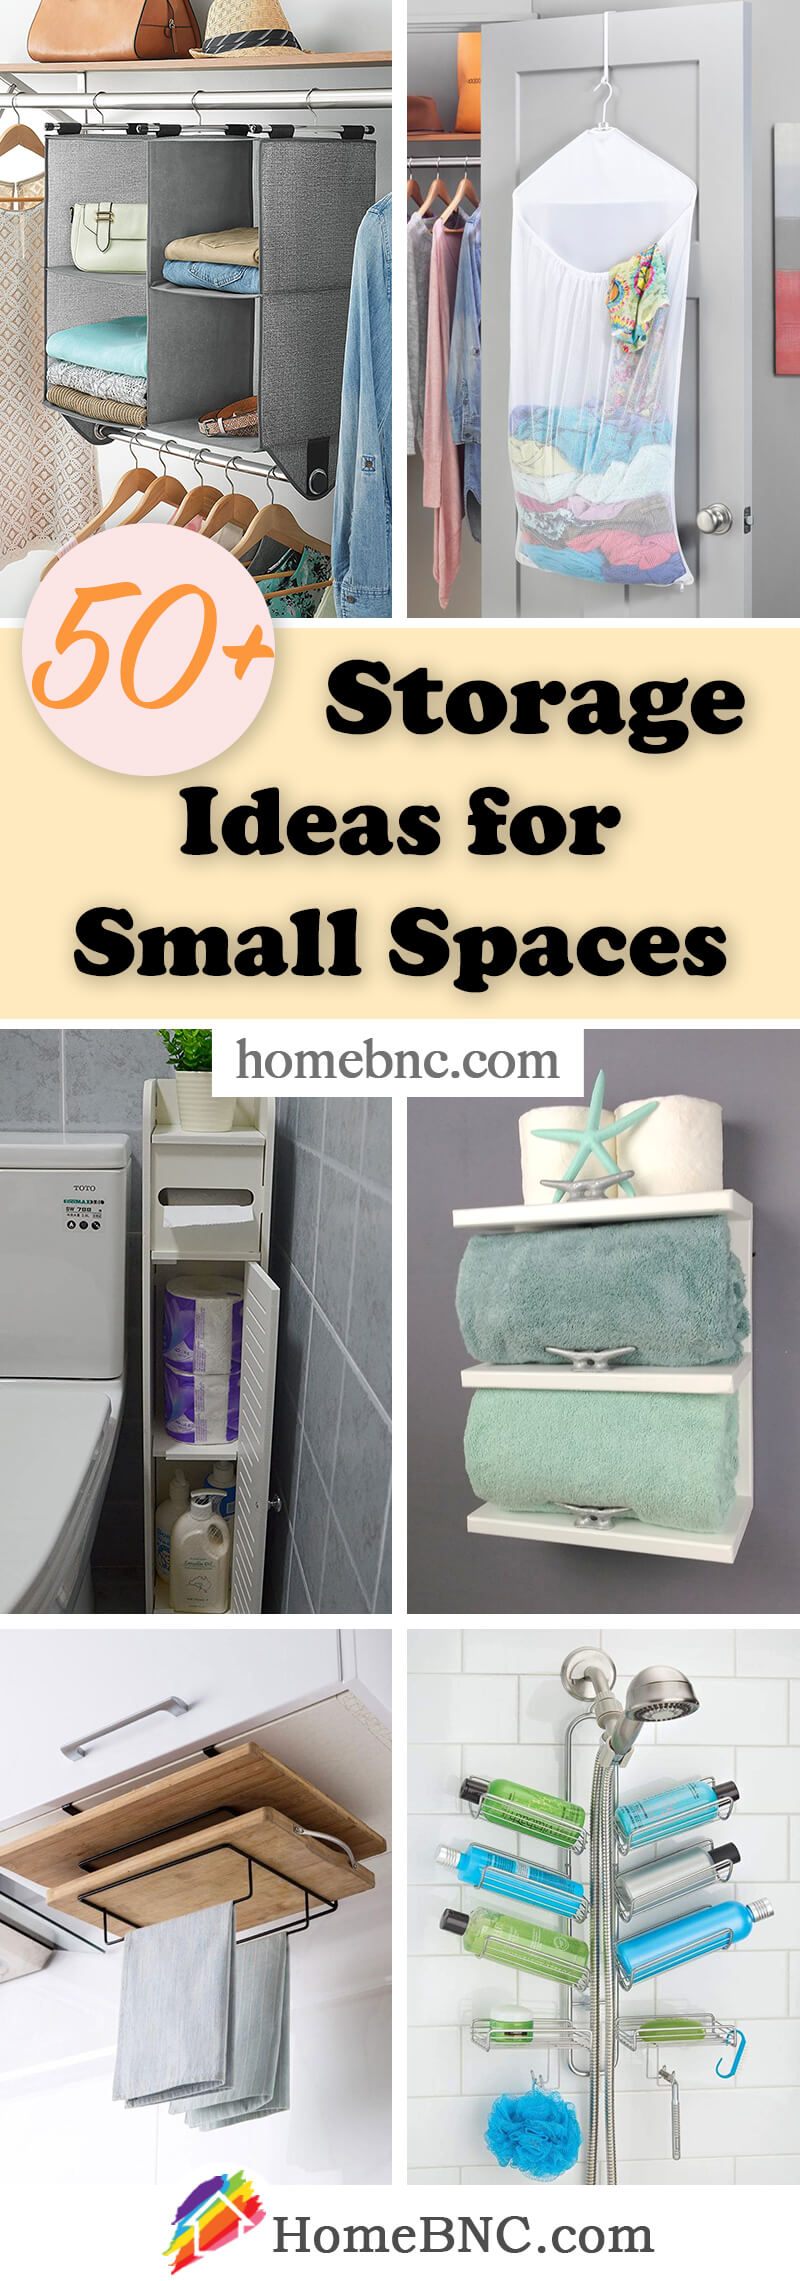 Storage Ideas for Small Homes